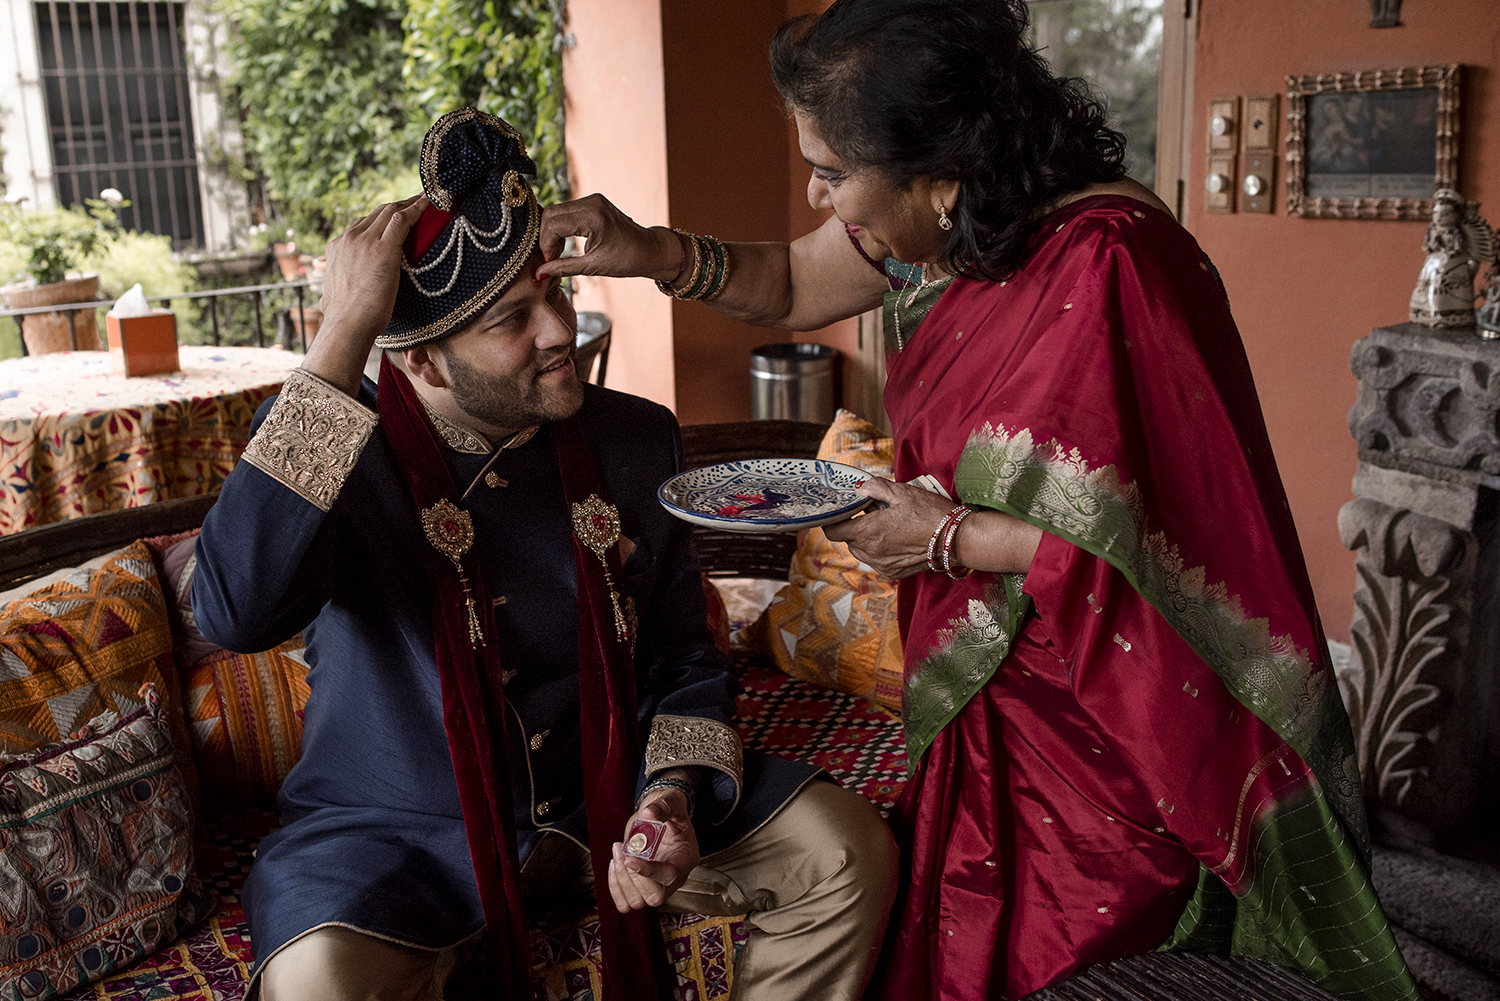 indian_wedding_san_miguel_de_allende_chio_garcia_photographer (23).jpg